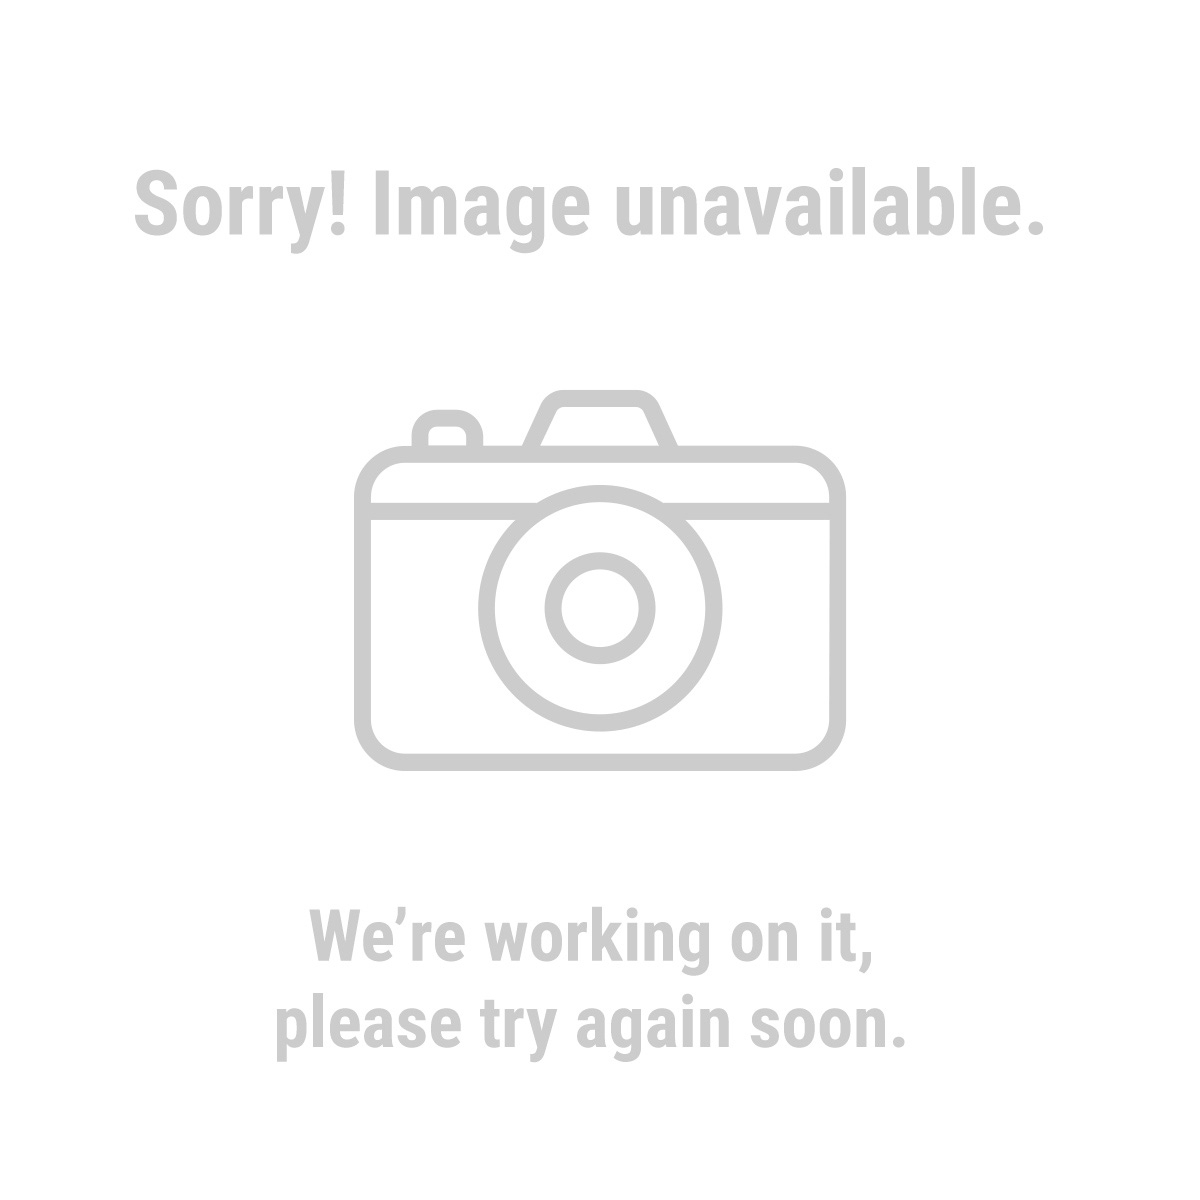 Gordon 93828 14 Pocket Tool Roll